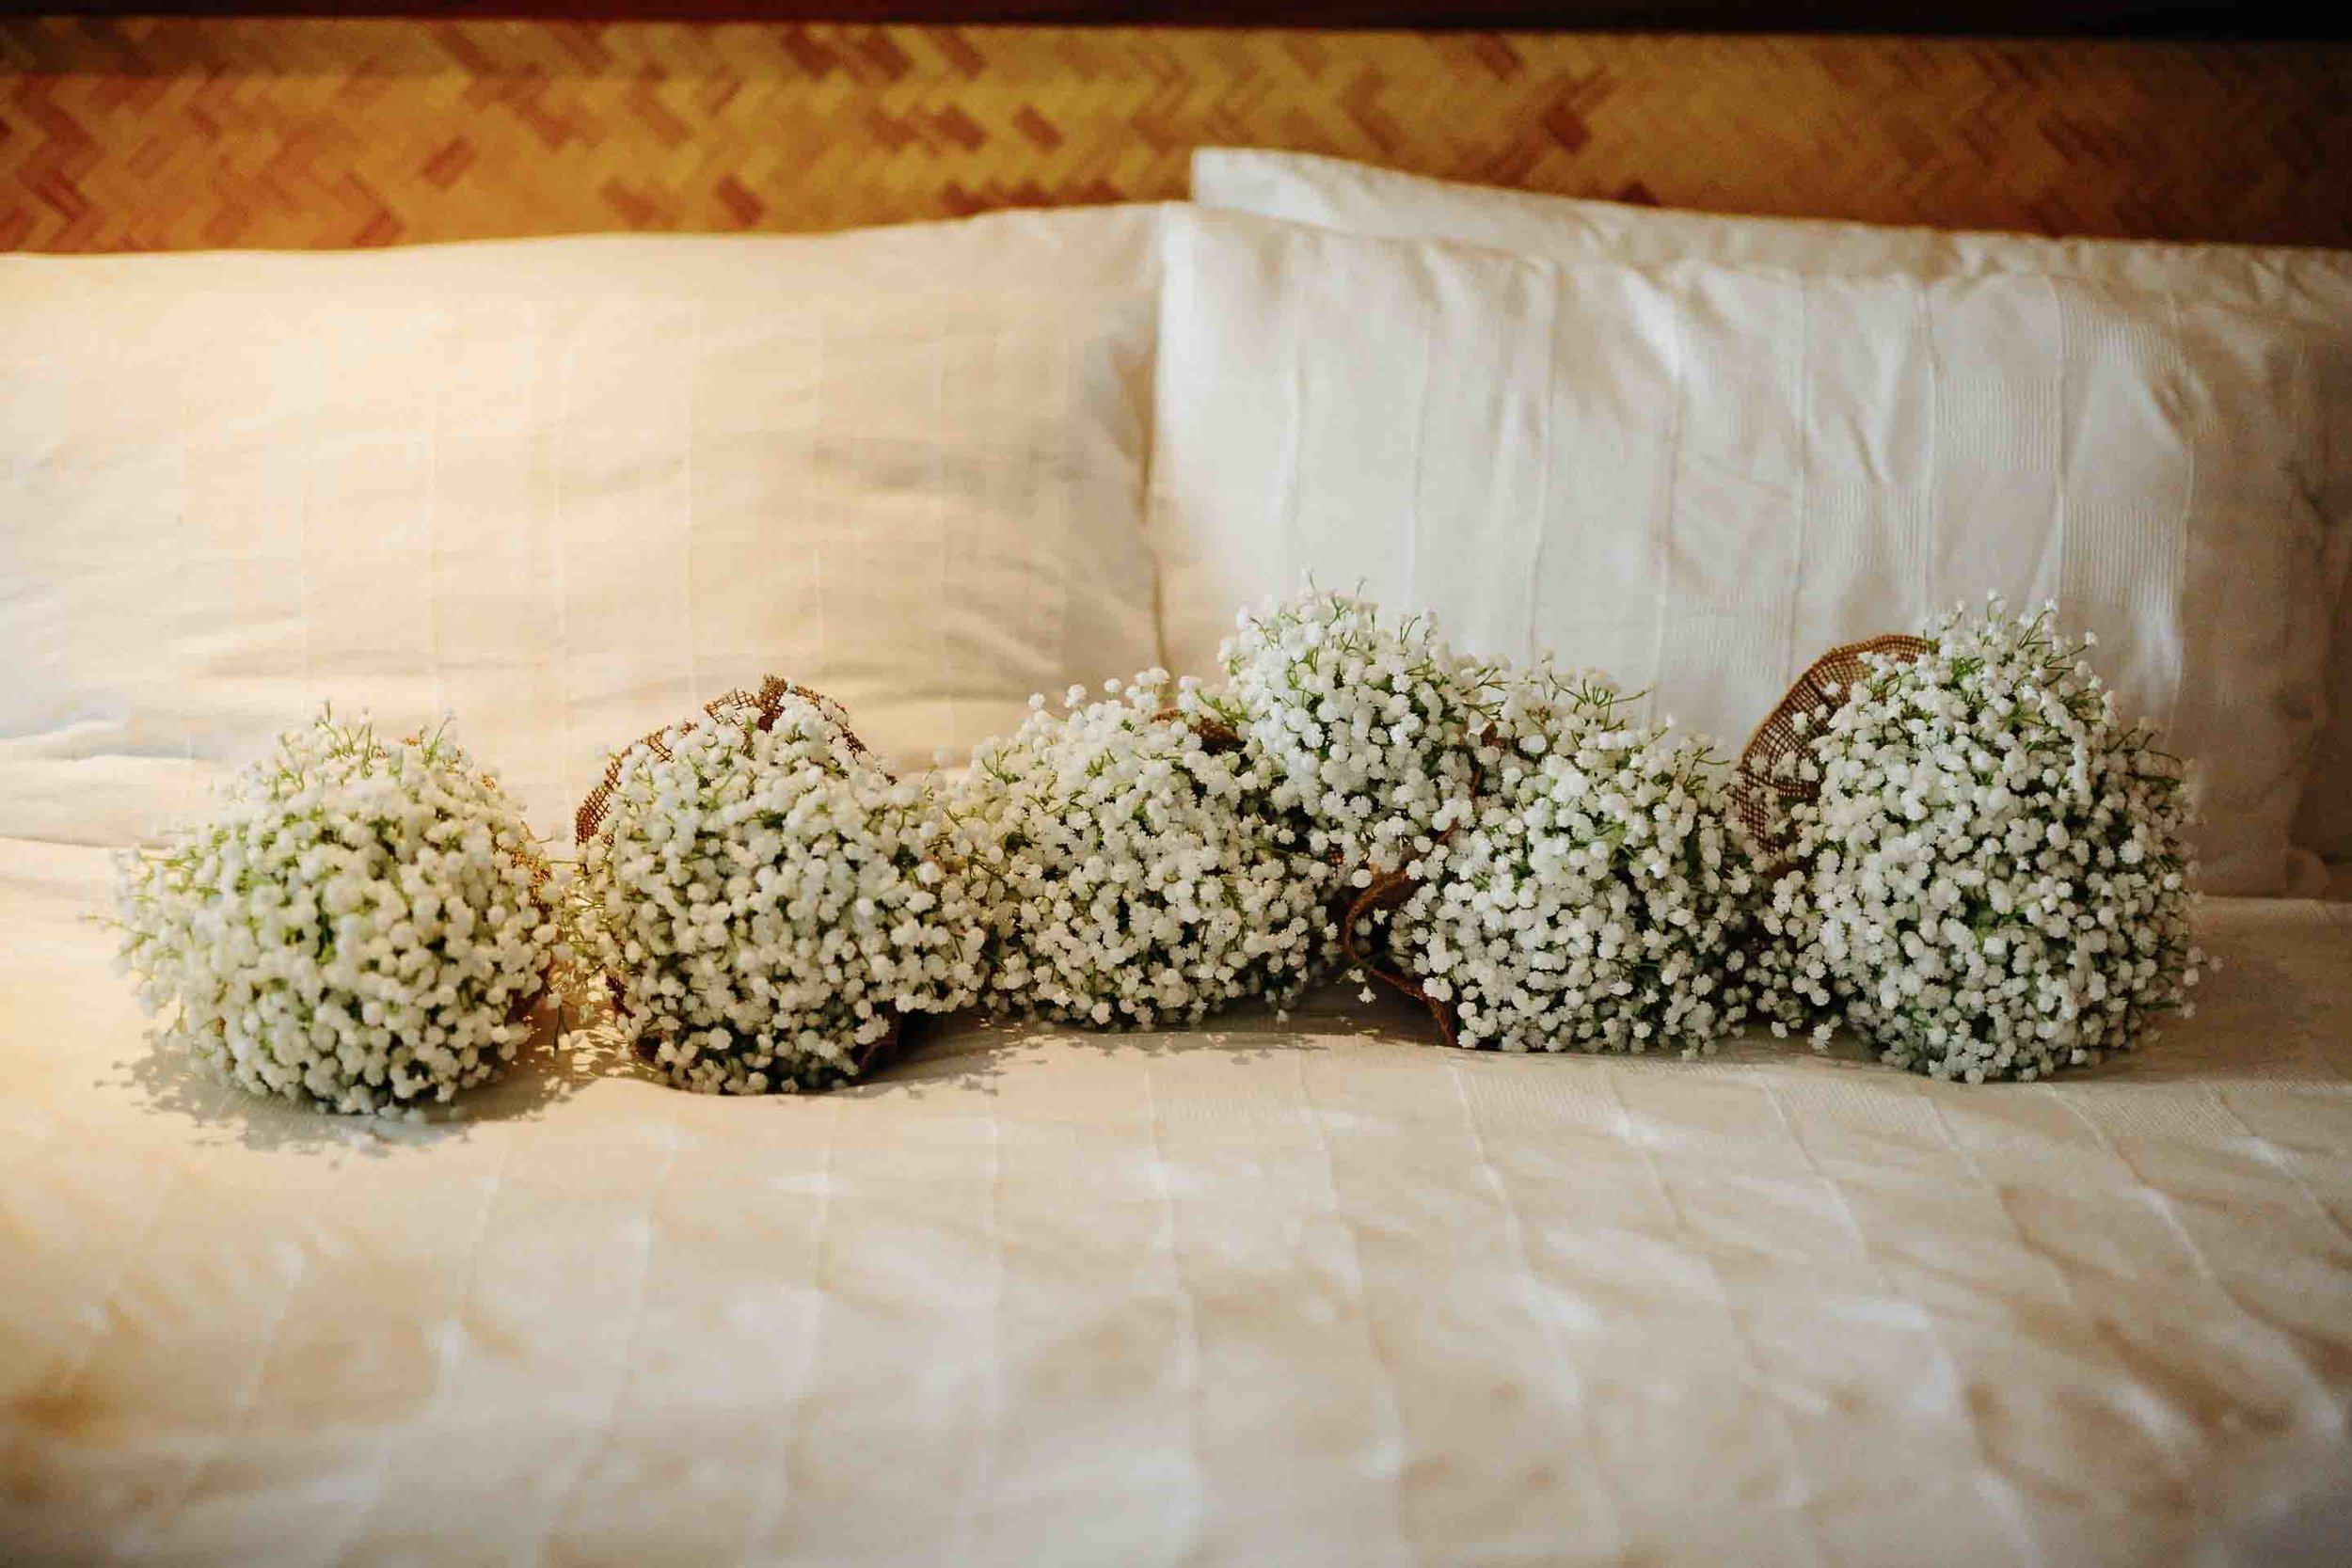 bridal bouquets lined up on the bed